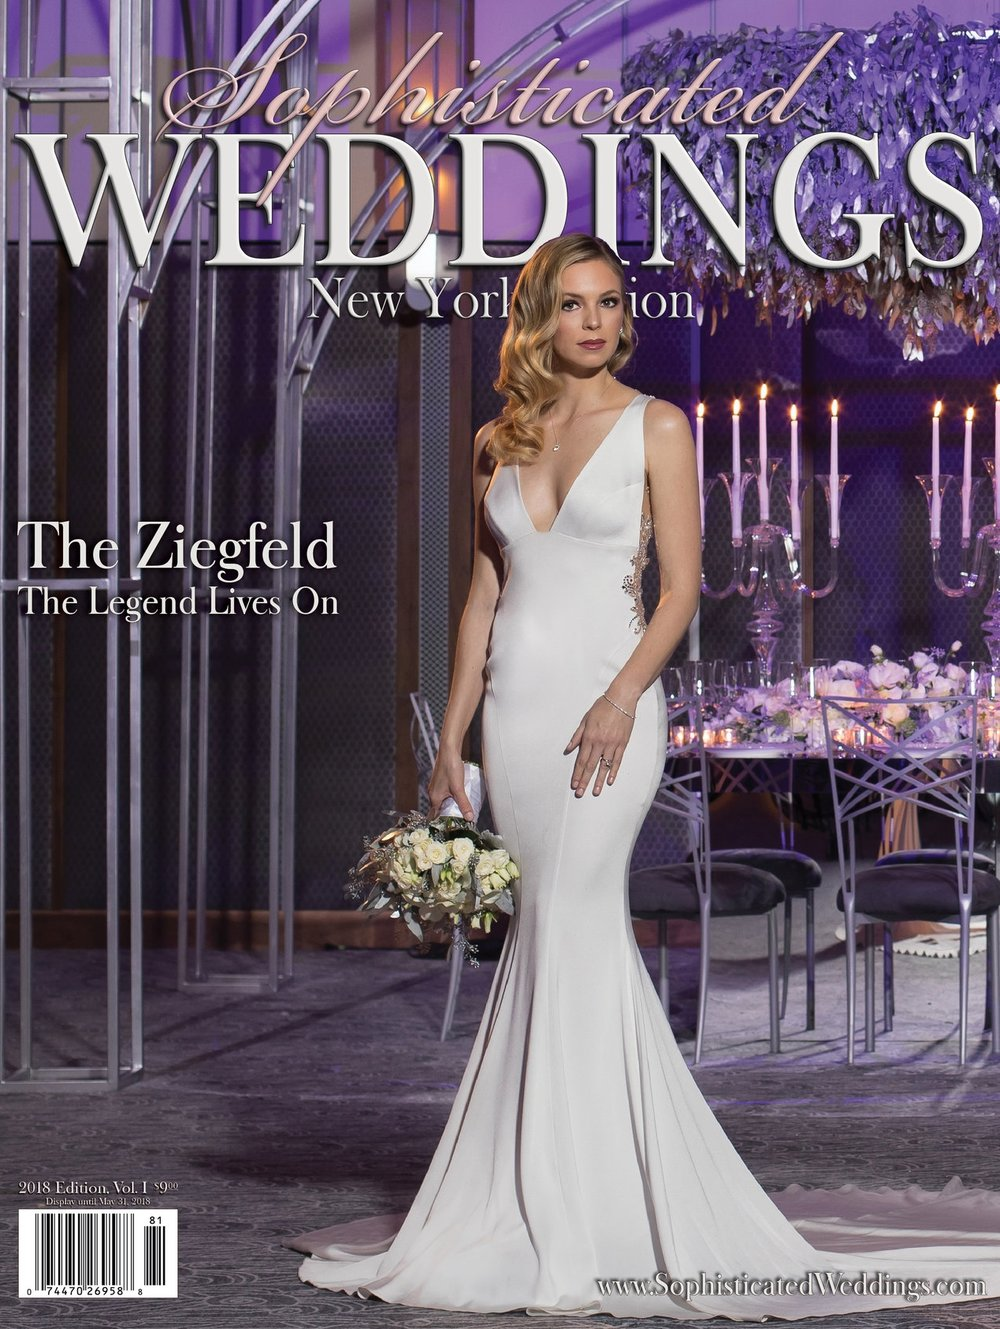 Sophisticated Weddings Magazine Cover - Photo shoot featuring Birch Event Design for the reopening of The Ziegfeld